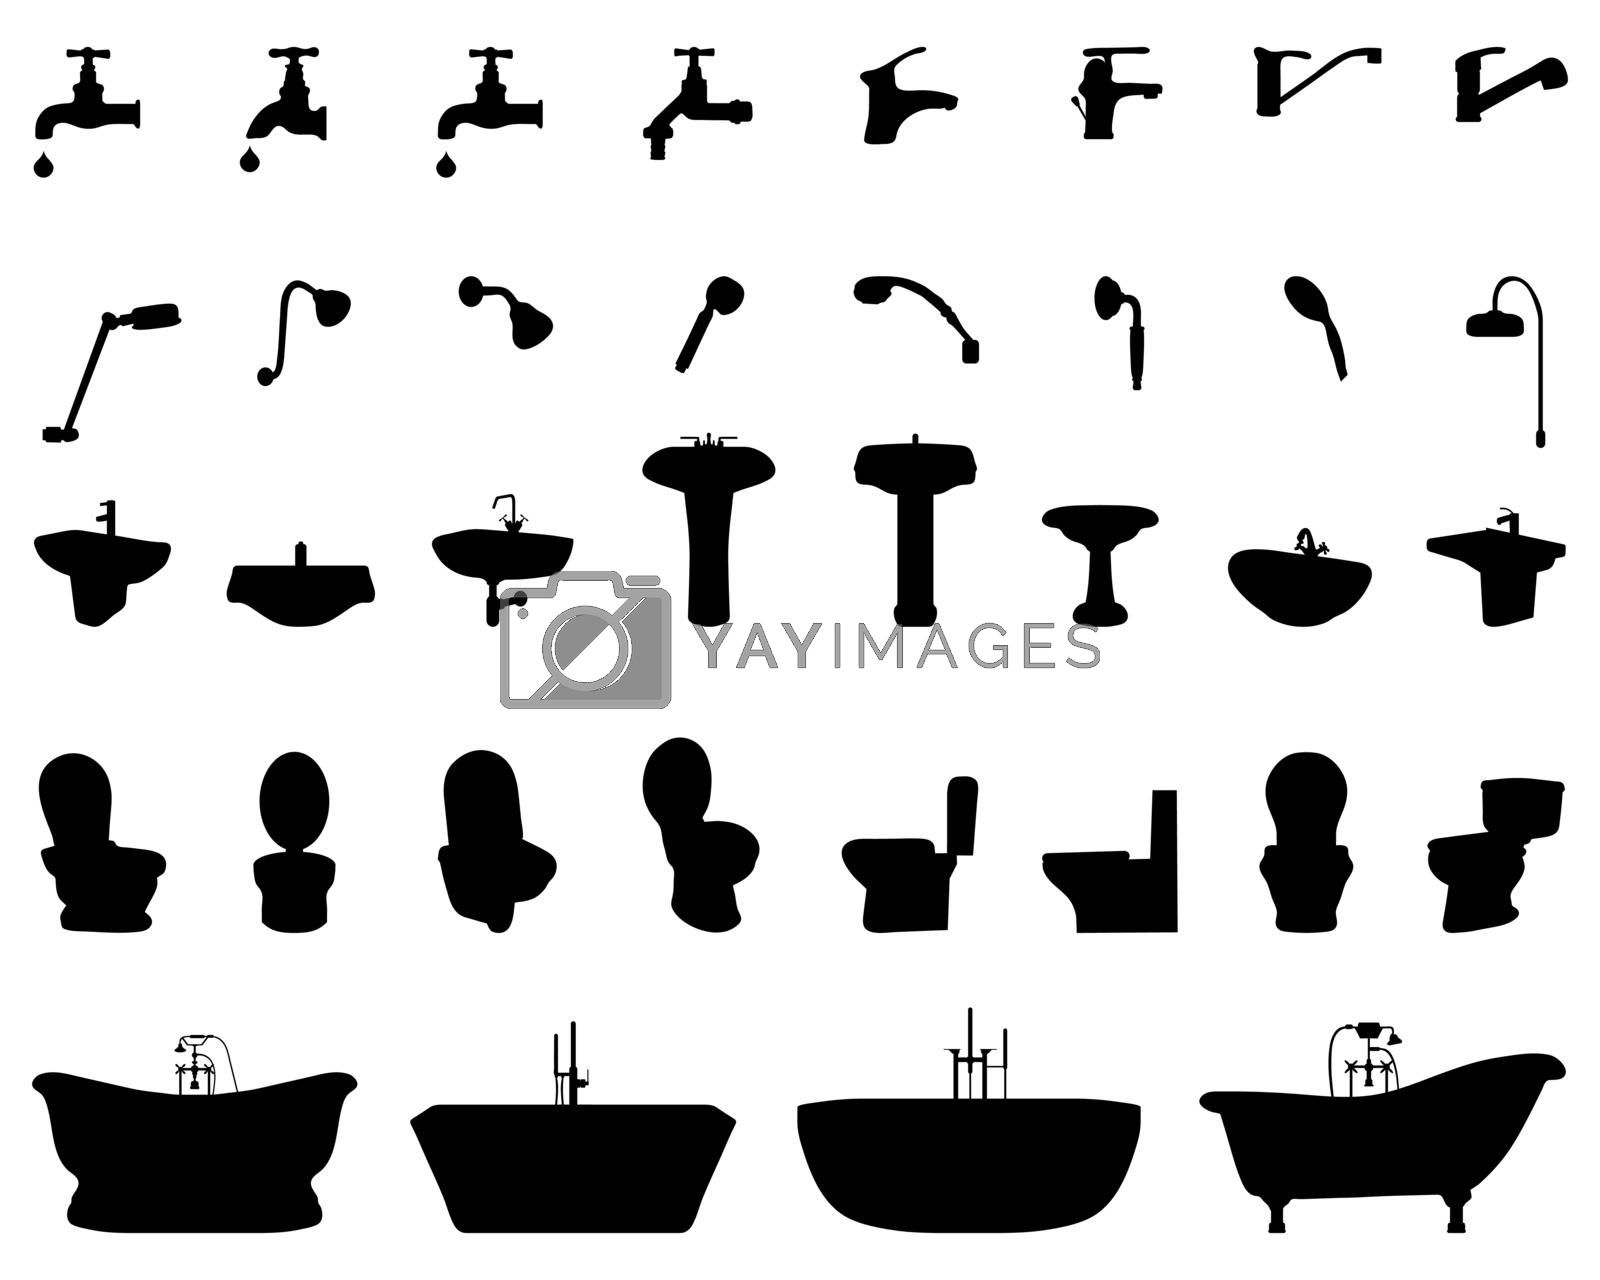 Black silhouettes of bathroom elements on a white background